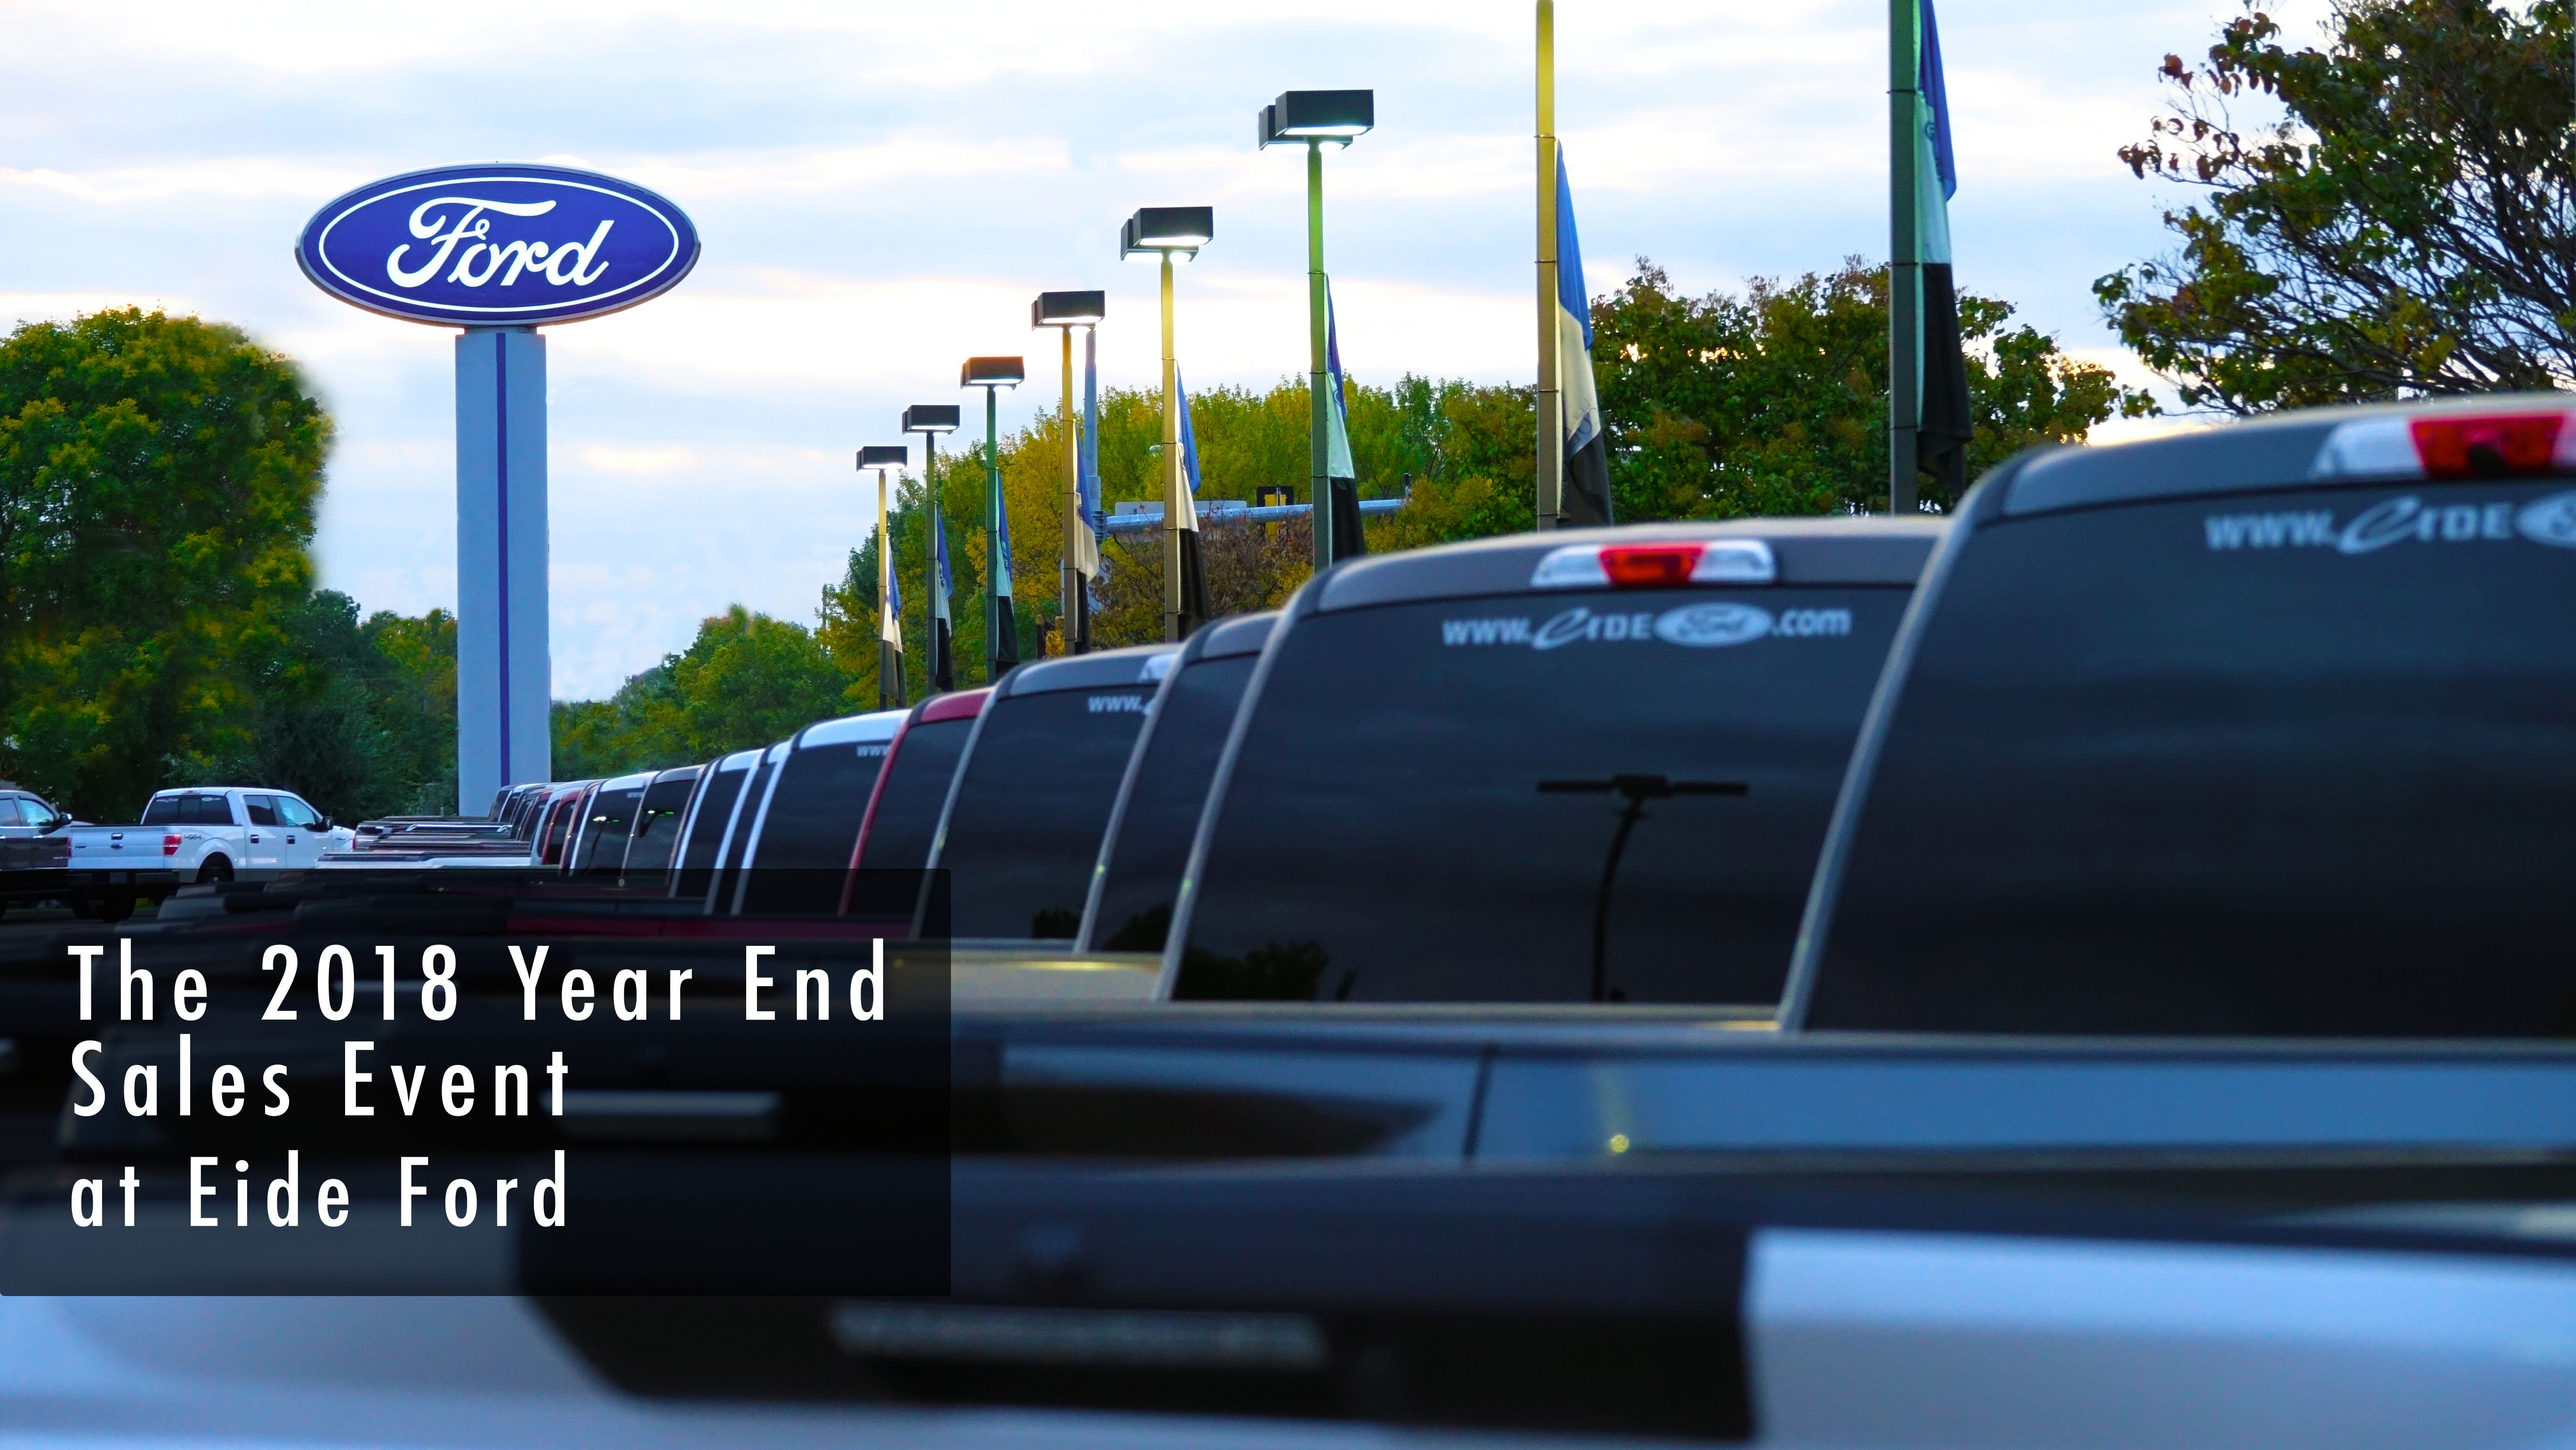 The Year End Sales Event at Eide Ford is a great time to pick out your next vehicle!